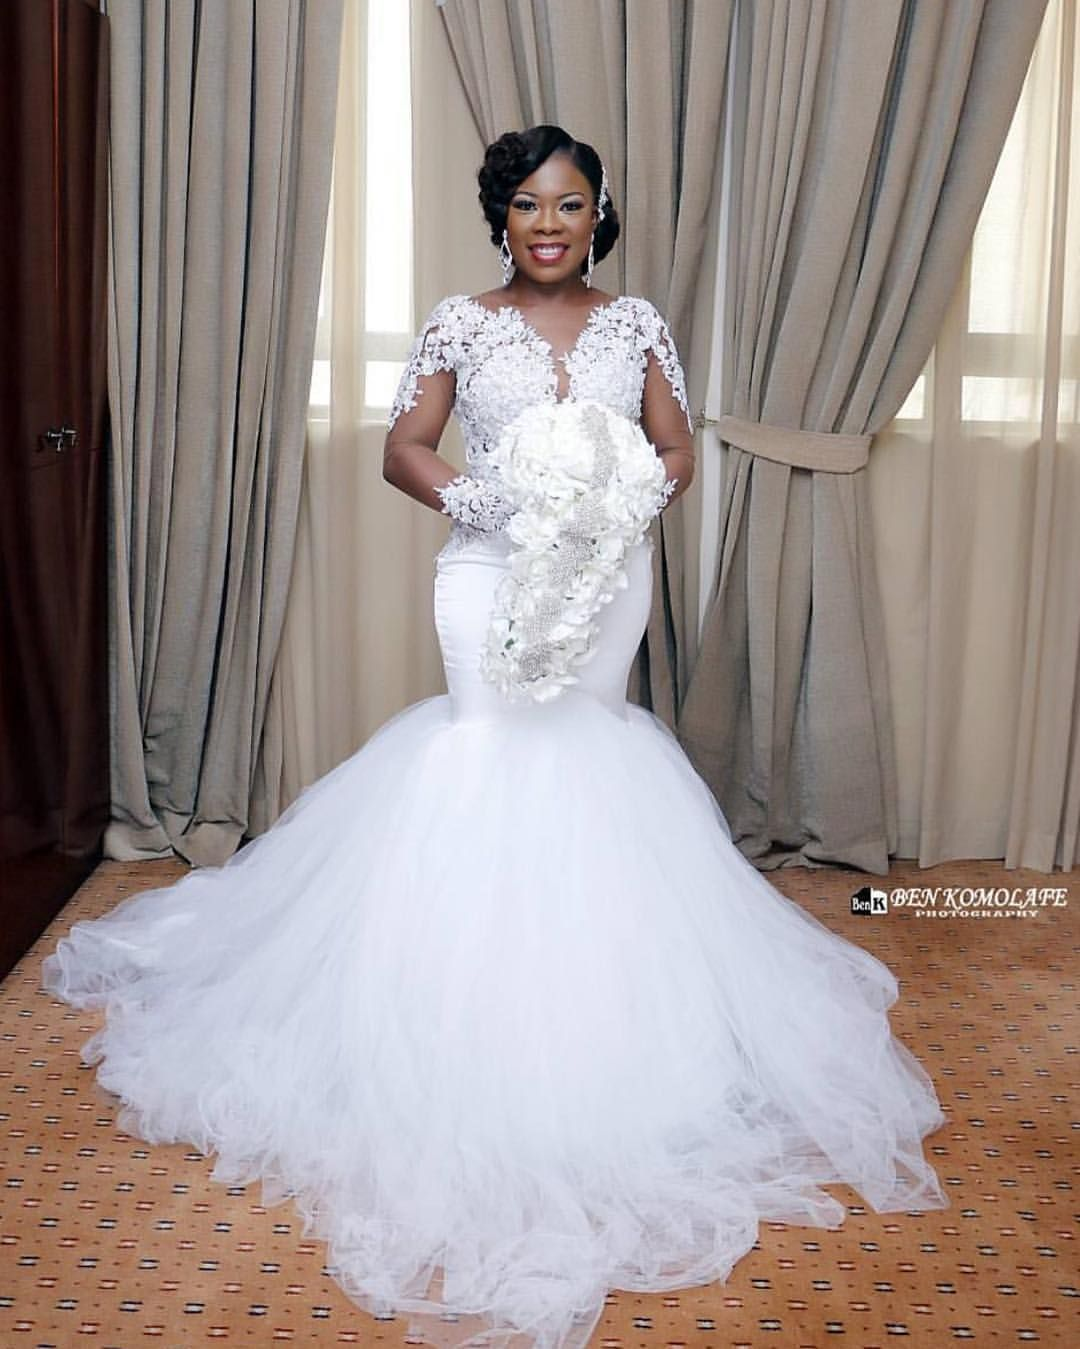 African wedding dresses for guests  Follow us  SIGNATUREBRIDE on Twitter and on Facebook at SIGNATURE